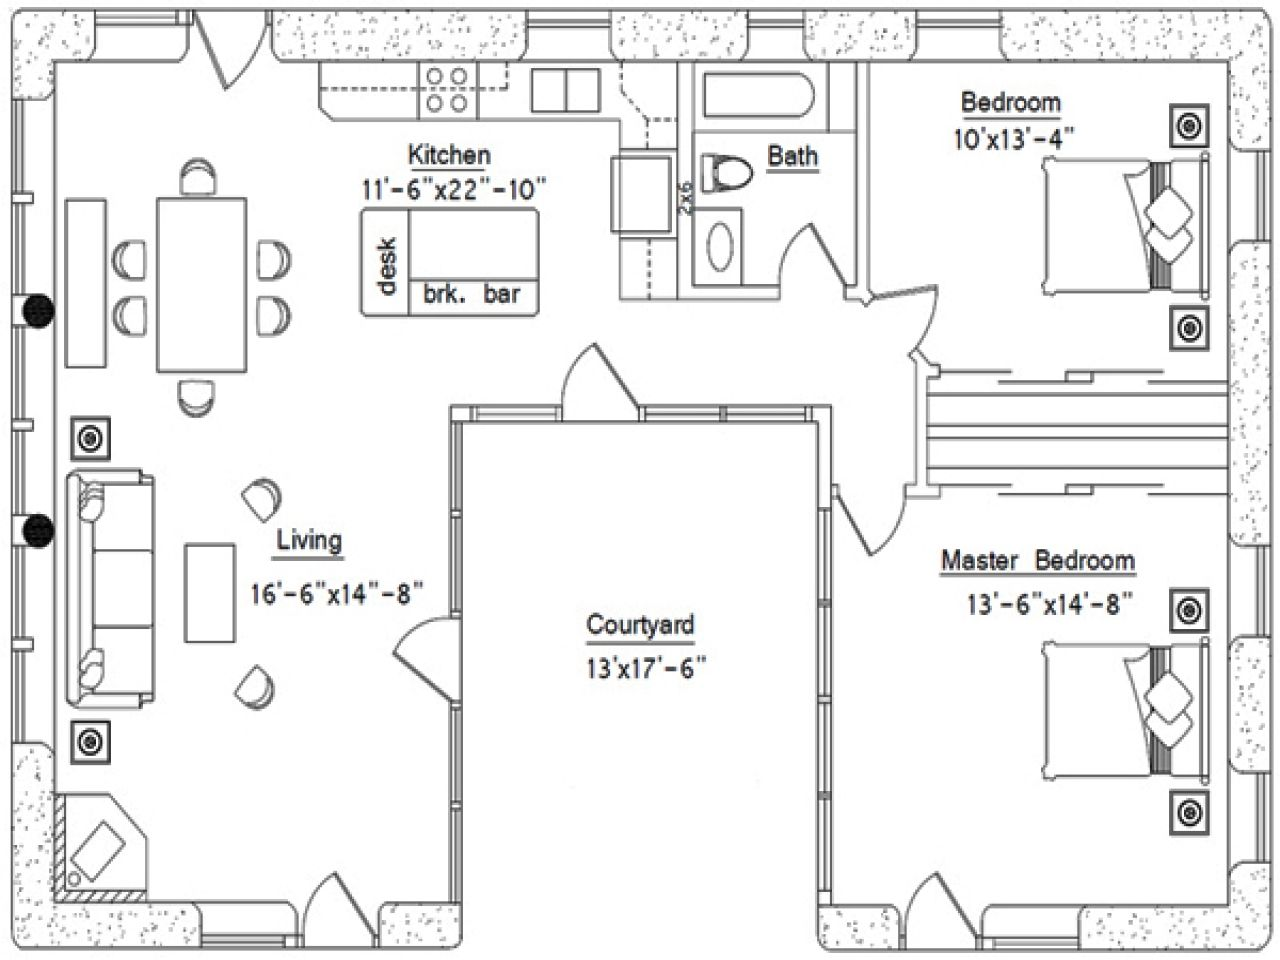 U Shaped House Plans With Courtyard Pool Central Kitchen Floor Plan Burger Modern Under 100k Interio U Shaped House Plans U Shaped Houses Courtyard House Plans